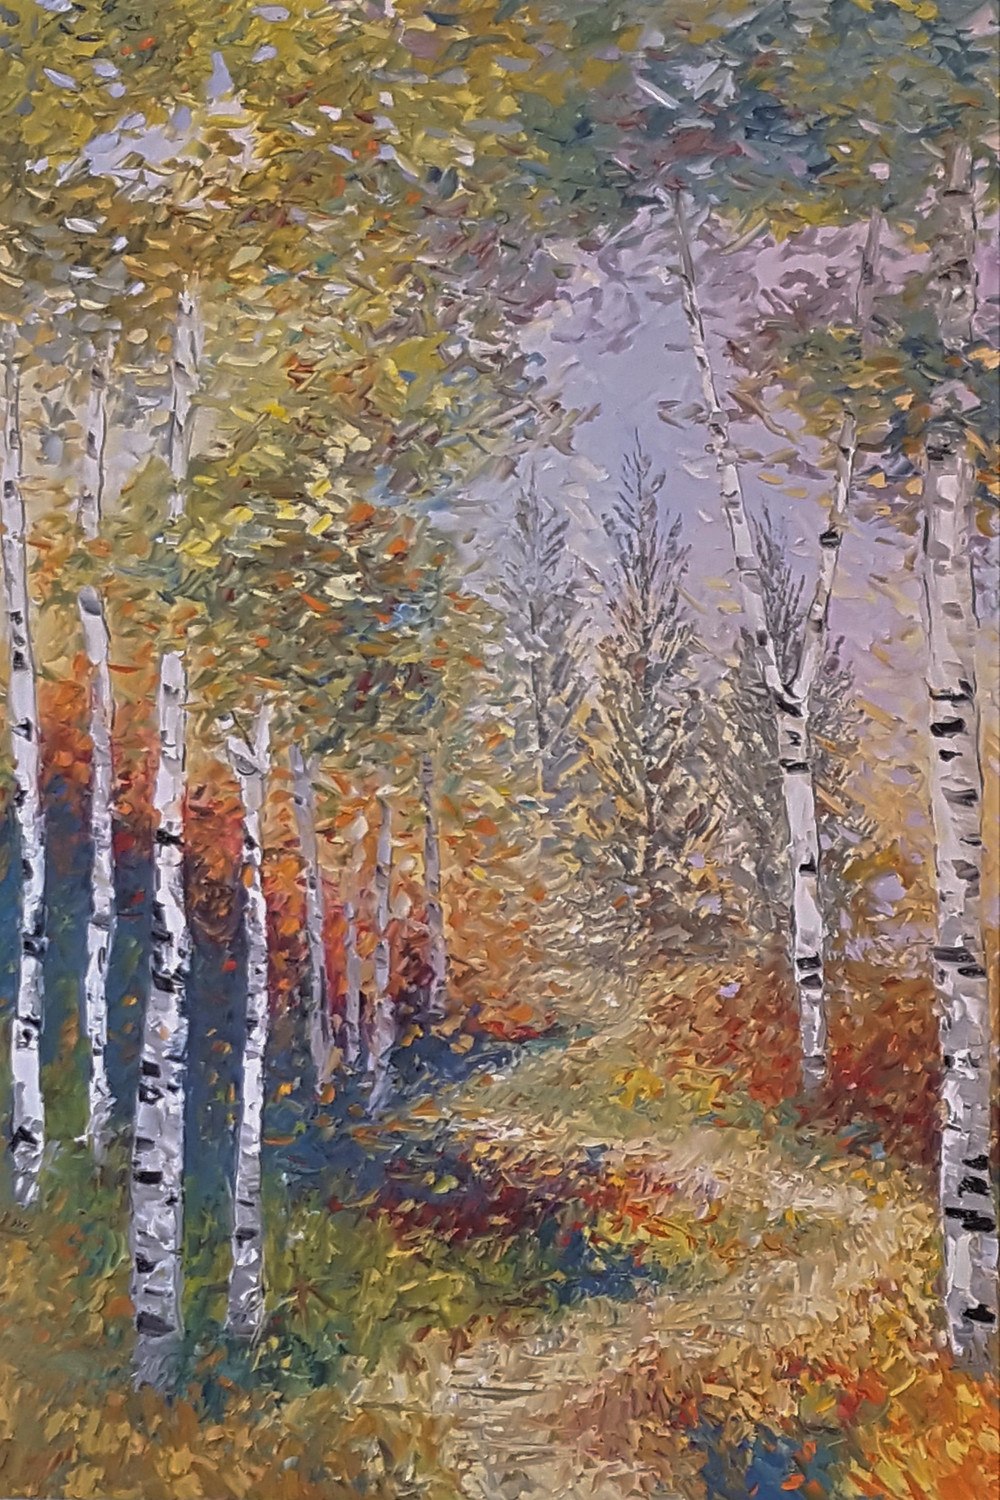 Vertical birch tree landscape with syn lit path. Giclee print by Kate Moynihan